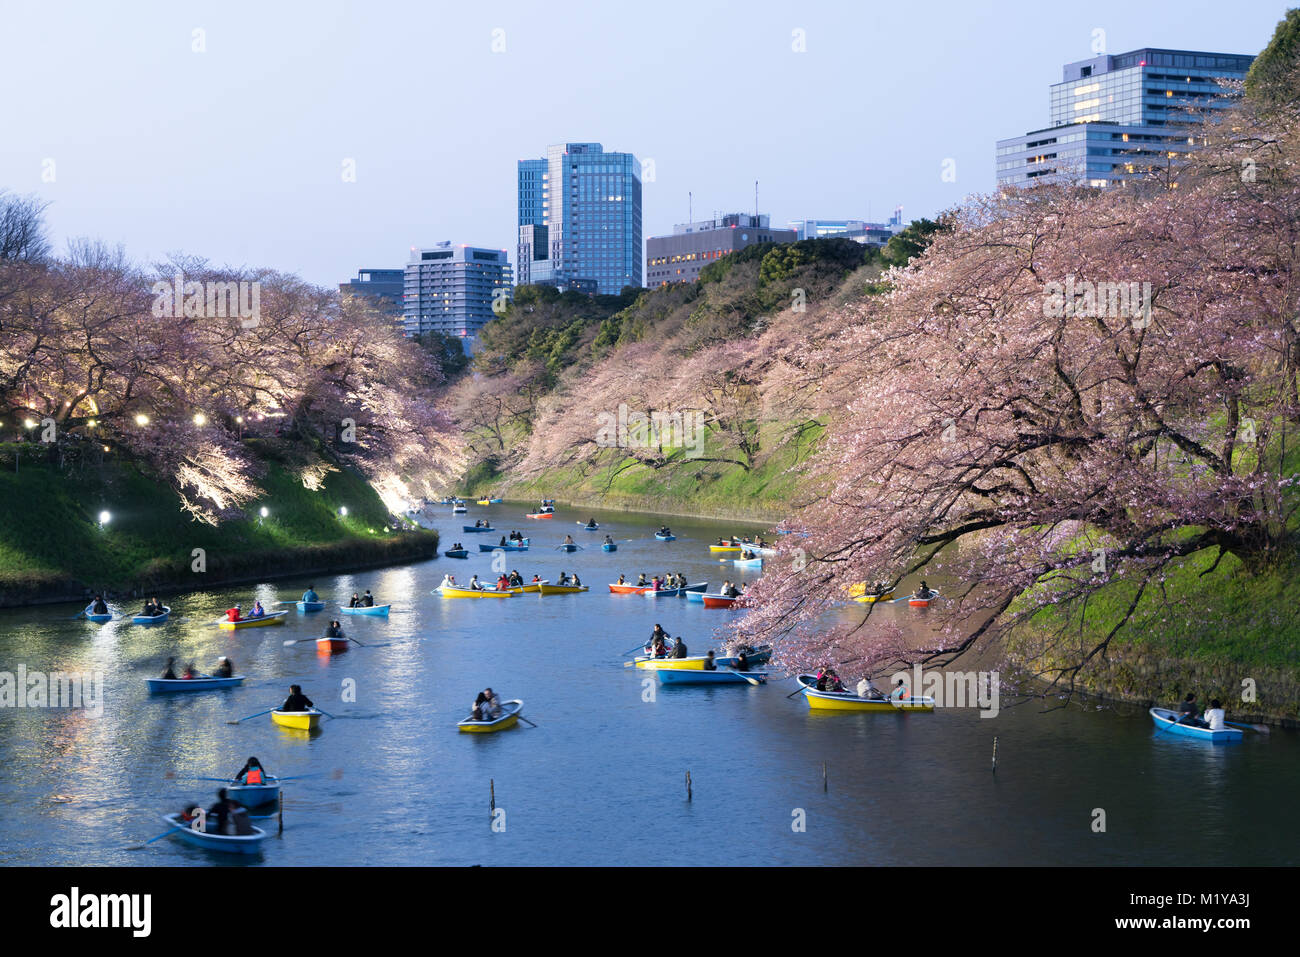 Night view of massive cherry blossoming with Tokyo city as background. Photoed at Chidorigafuchi, Tokyo, Japan. - Stock Image